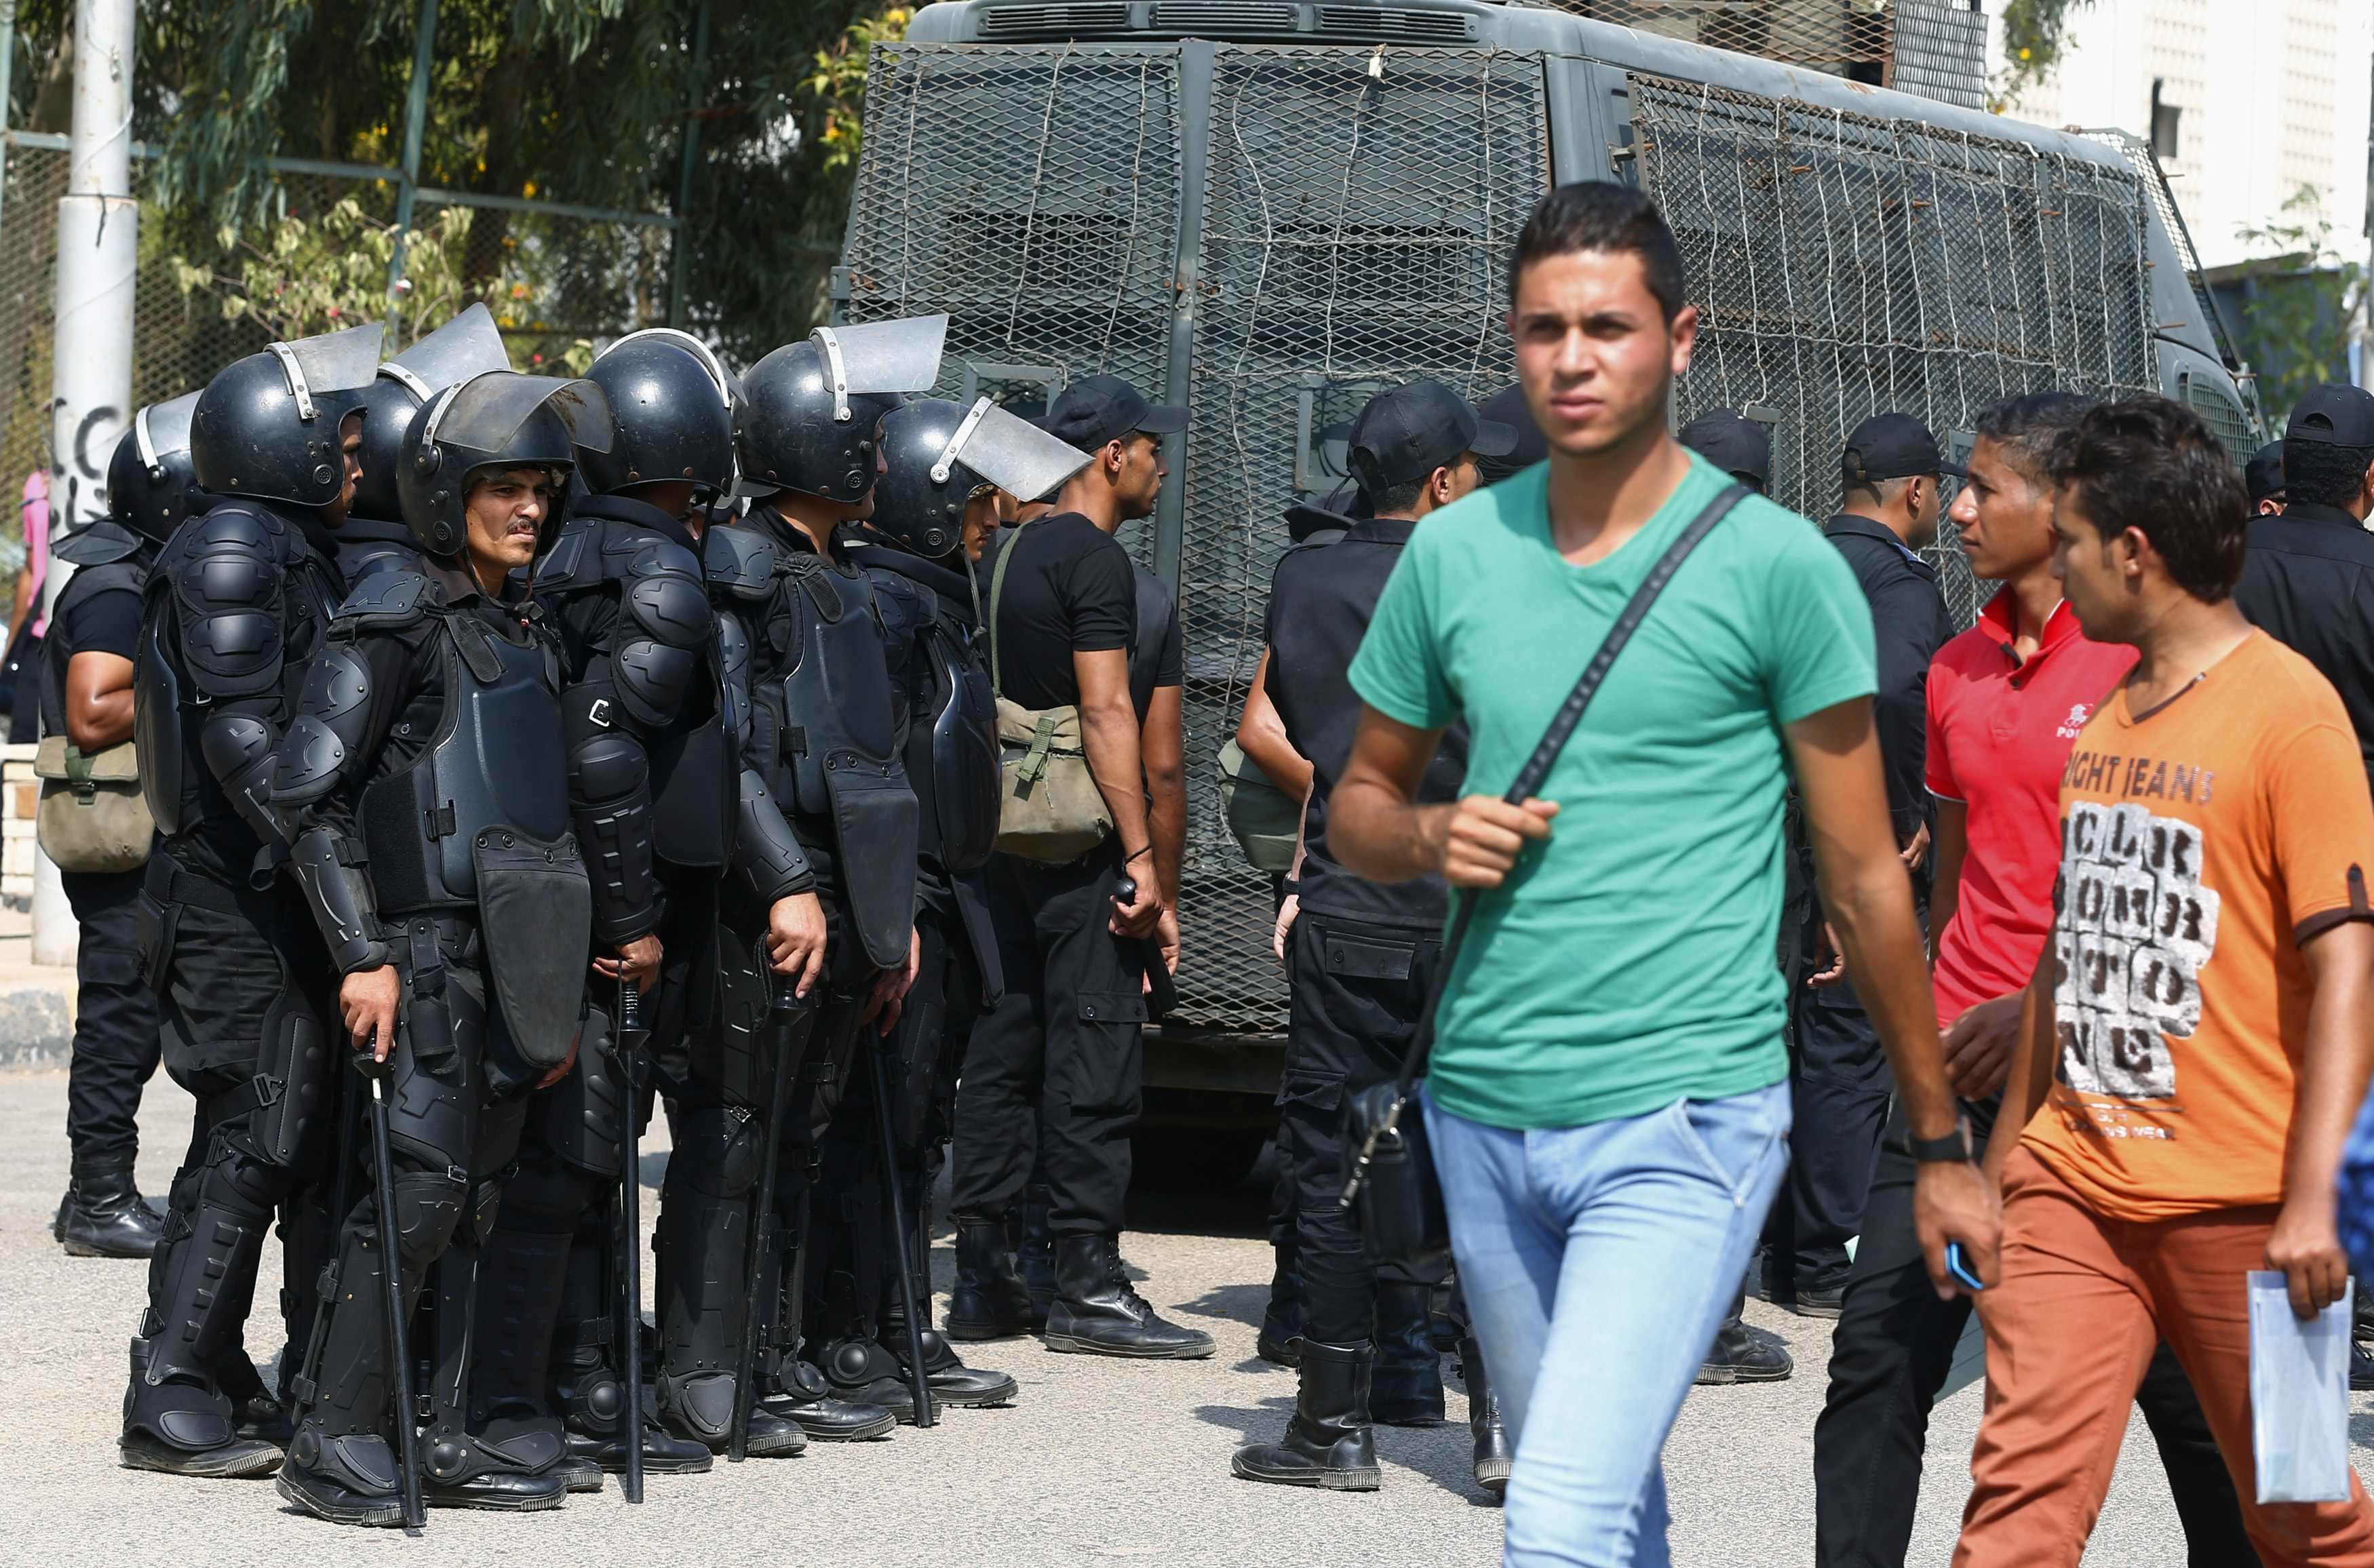 Al-Azhar University students walk past riot police during a protest conducted by the pro-Muslim Brotherhood student movement,  Students Against the Coup, October 12, 2014. Credit: Amr Abdallah Dalsh/Reuters